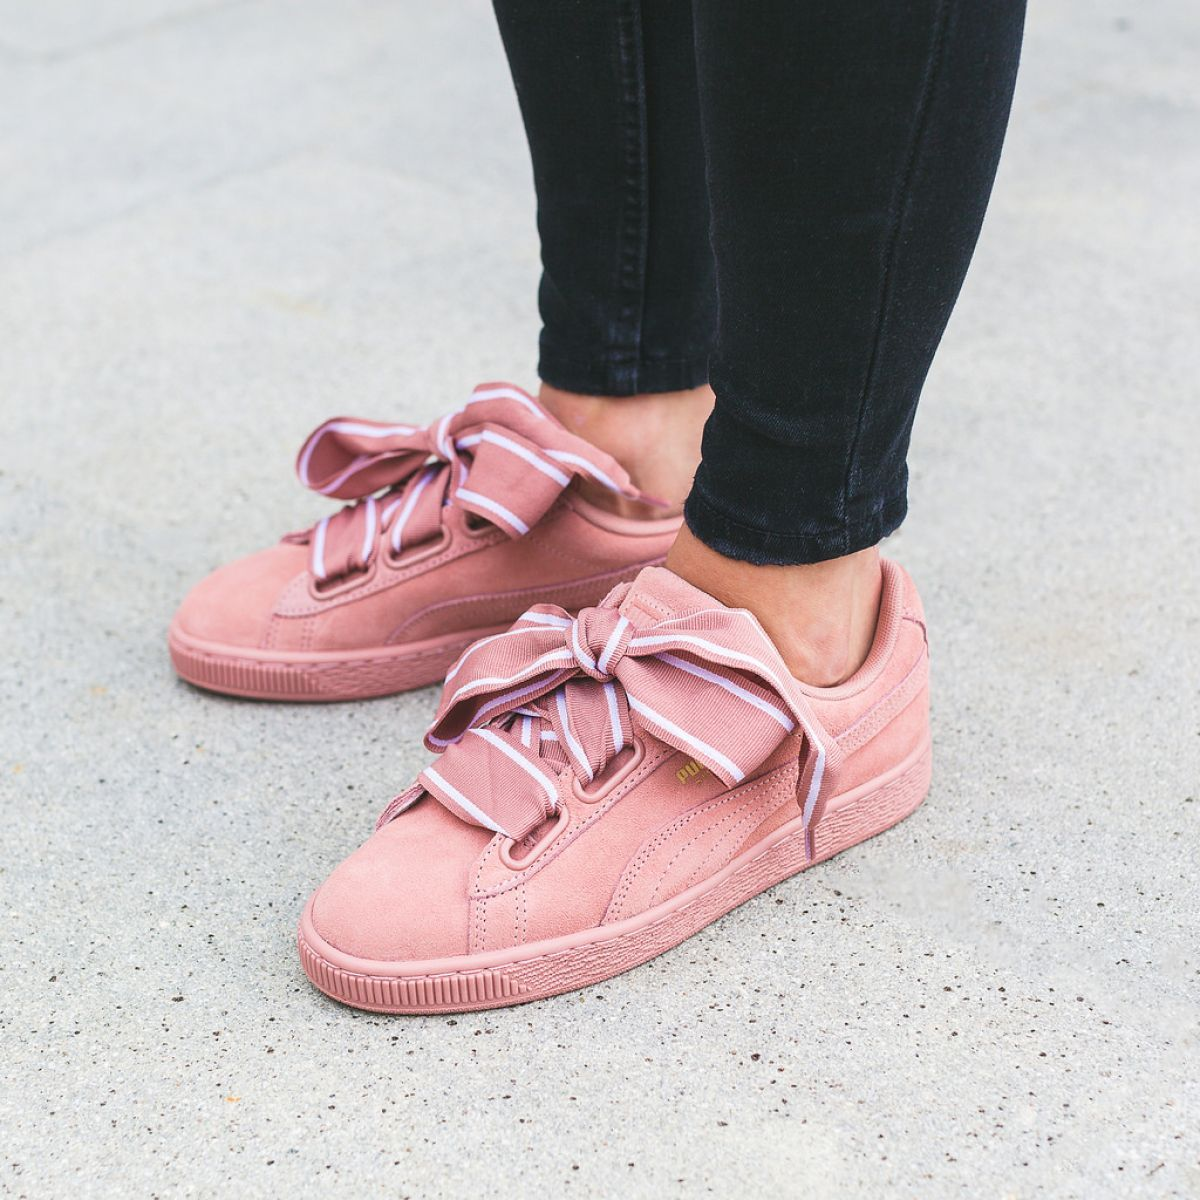 Puma Suede Heart Satin W chaussures rose